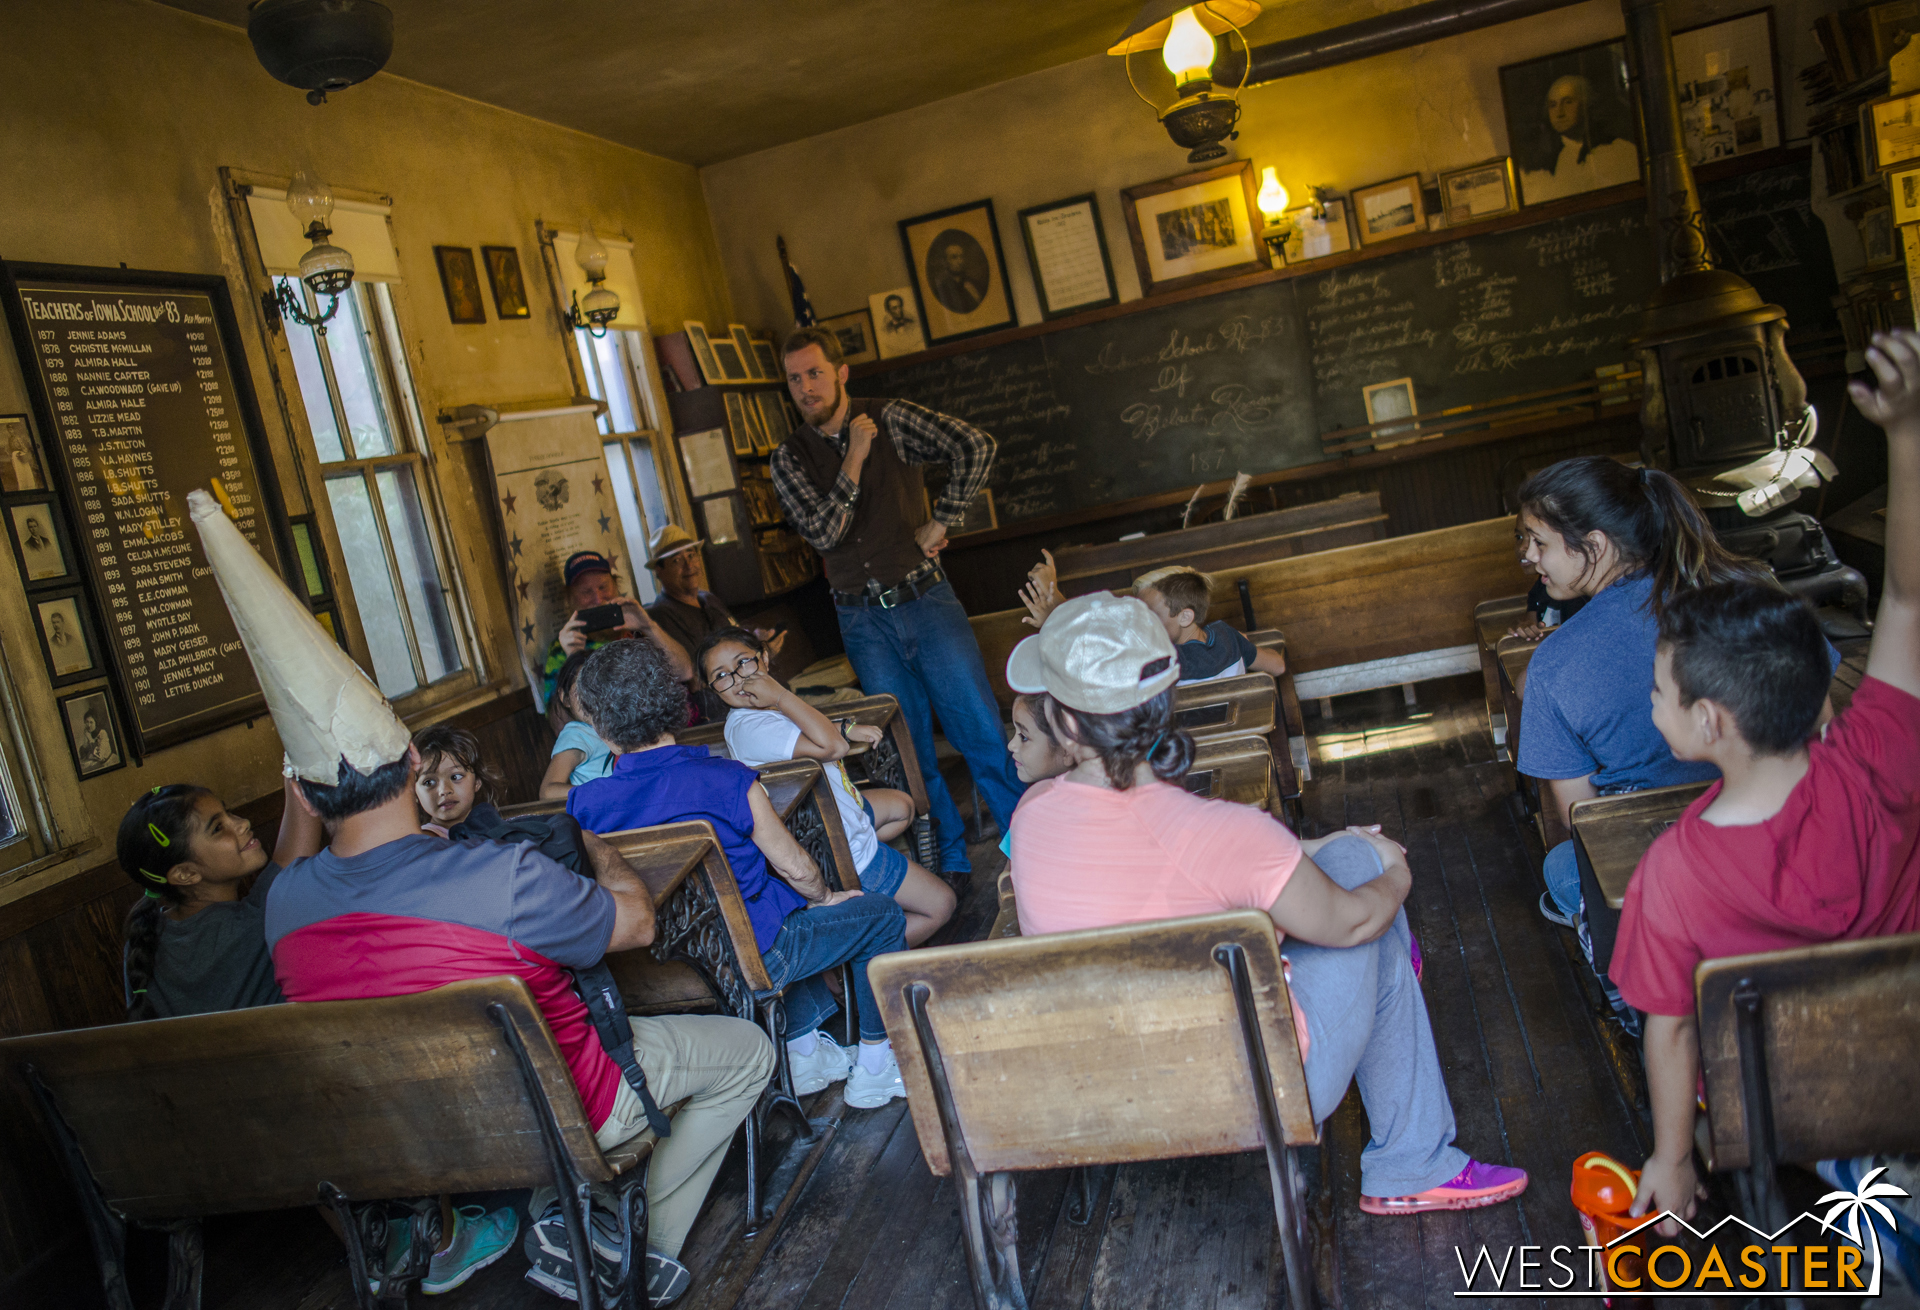 A lesson taking place inside the Schoolhouse.